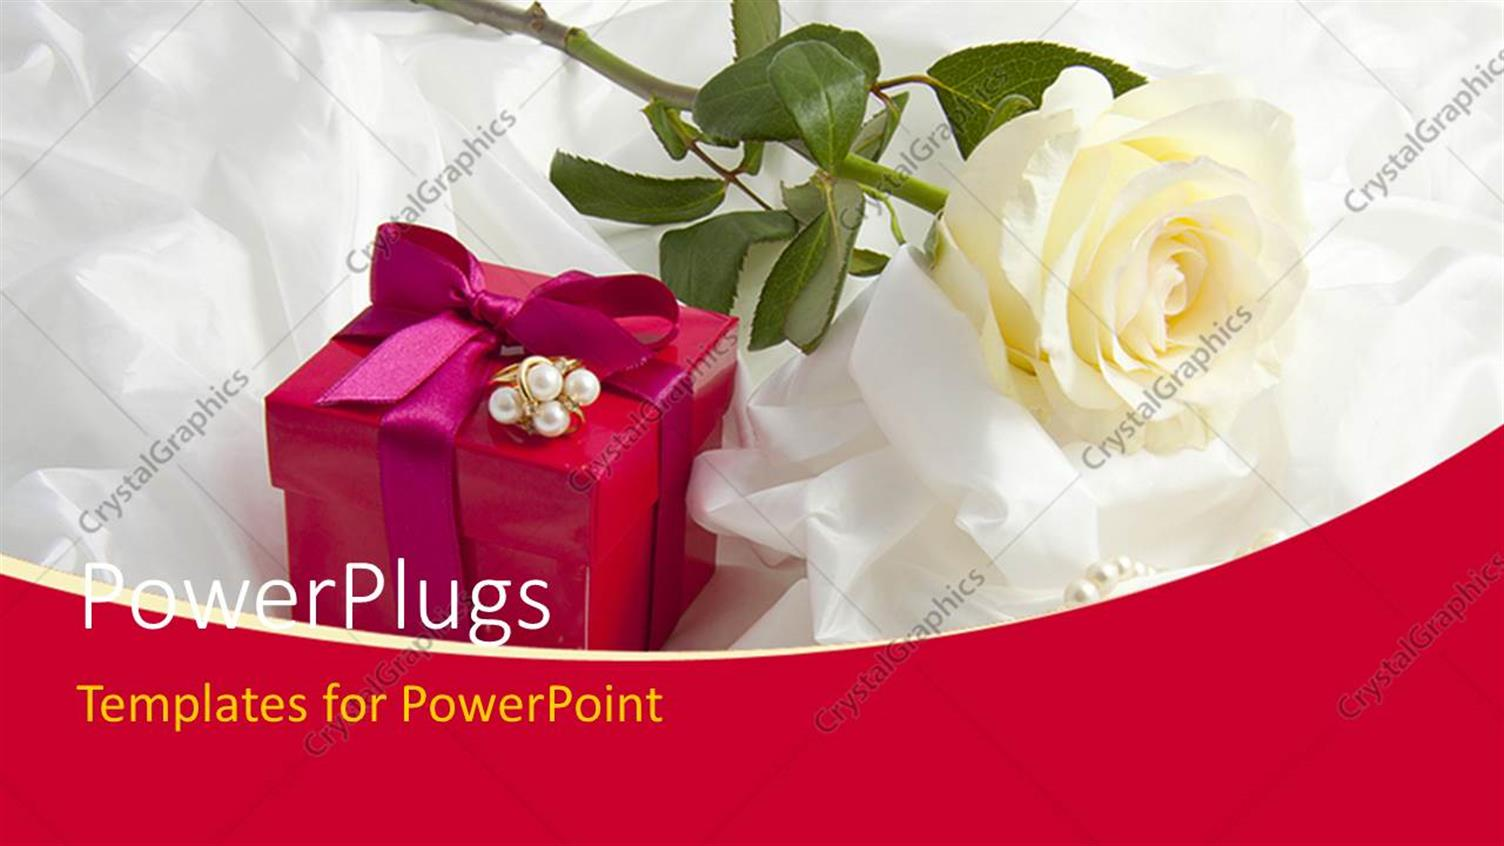 PowerPoint Template Displaying Ear Rings on Gift Box with Rose on White Satin